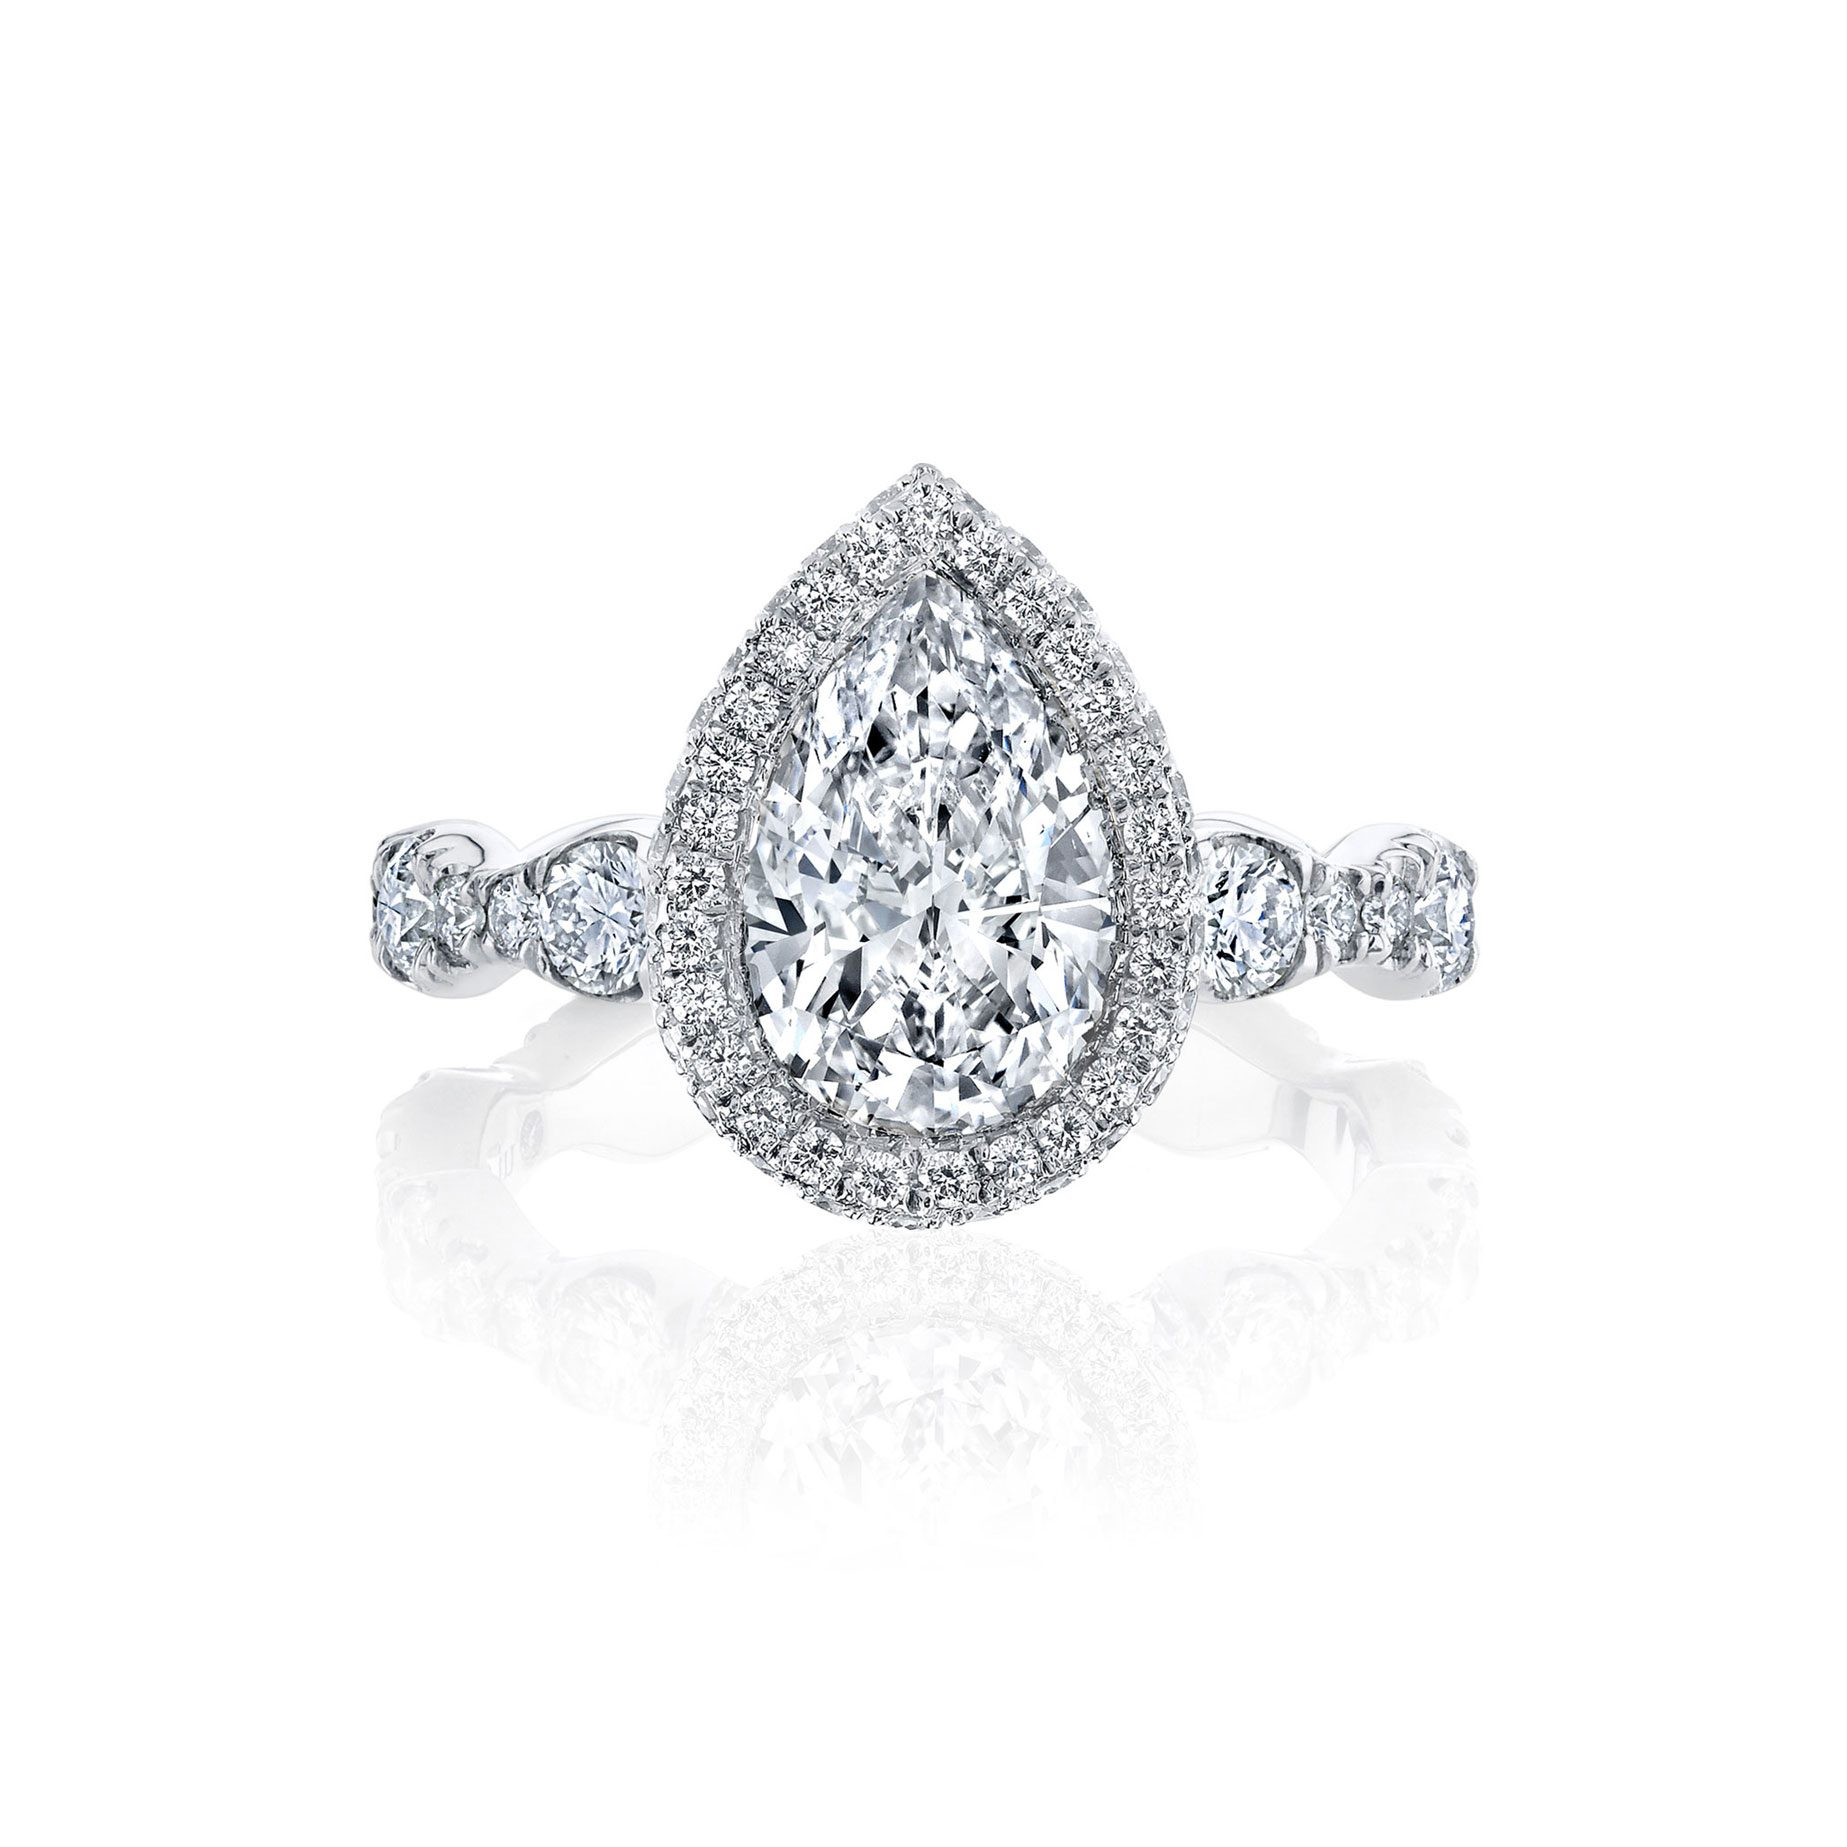 Yvonne Seamless Halo® Engagement Ring with Lab Grown Pear Cut Diamond in 18k white gold